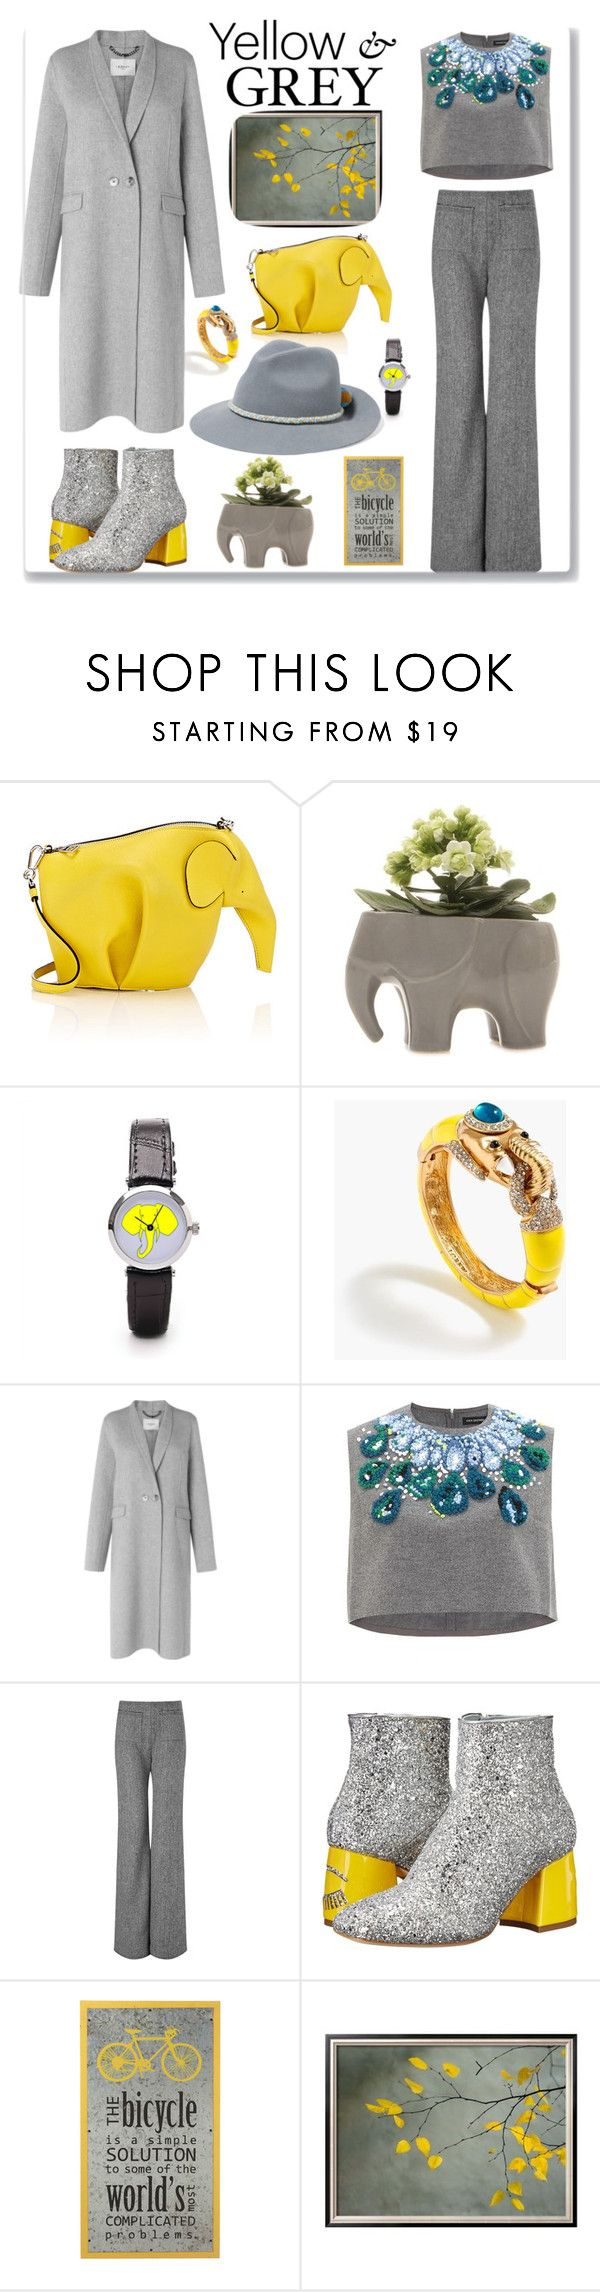 """Yellow & grey"" by dilka-ylibka on Polyvore featuring мода, Loewe, Chive, J.Crew, L.K.Bennett, Vika Gazinskaya, Isa Arfen, Chiara Ferragni и YOSUZI"